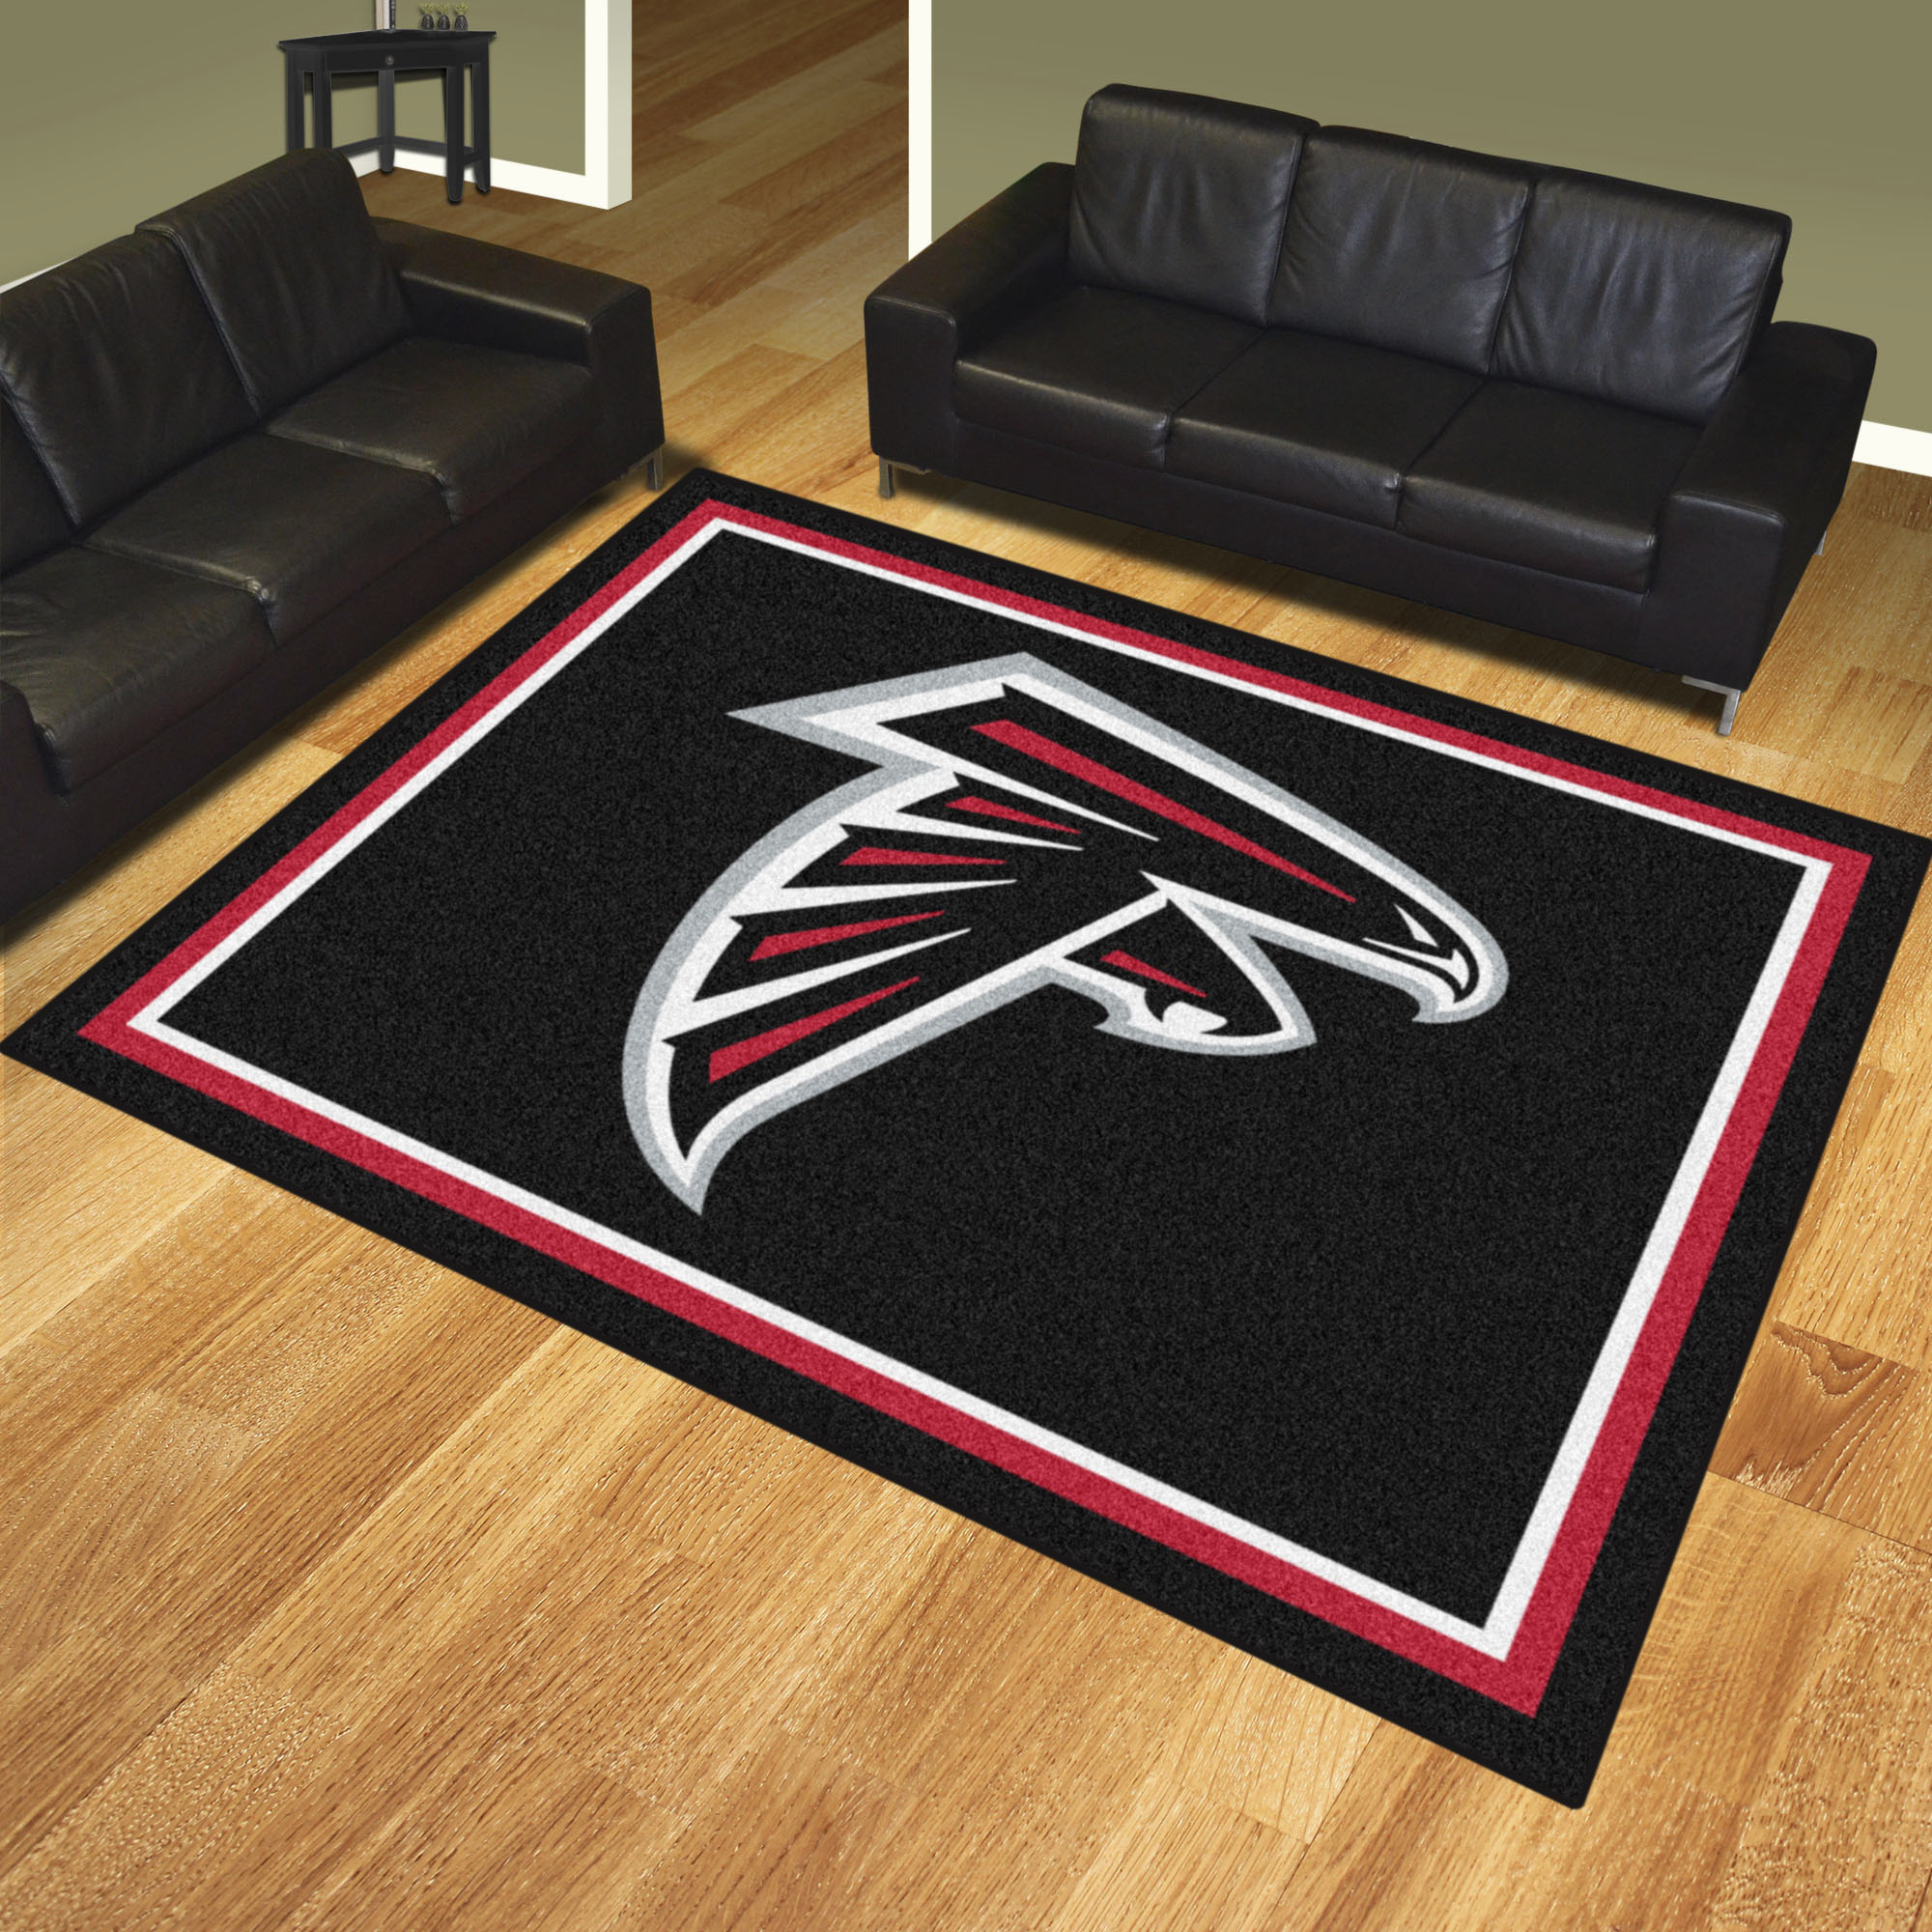 Atlanta Falcons Ultra Plush 8x10 Area Rug